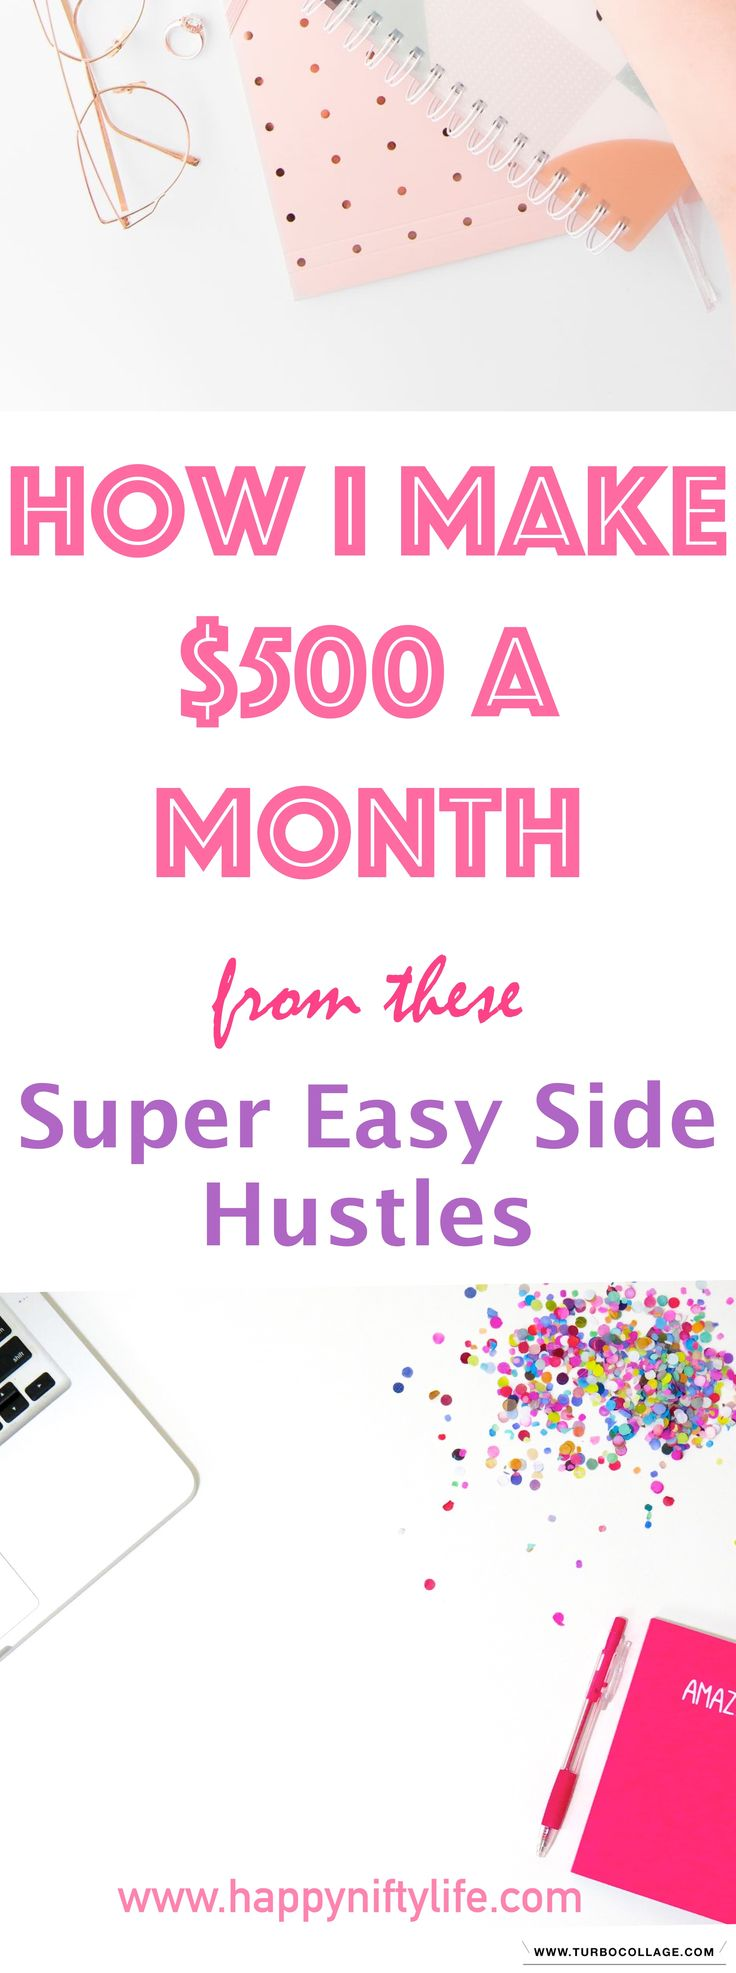 3 Easy Ways to Make Money Online and Work from Home. Working from home full-time or earning a side income is possible through side hustles. Here are some ideas to make extra cash. #workfromhome #sidehustles #stayathomemom #makemoneyonline #makemoneyfast #makemoneyfromhome #makeextramoney #sideincome